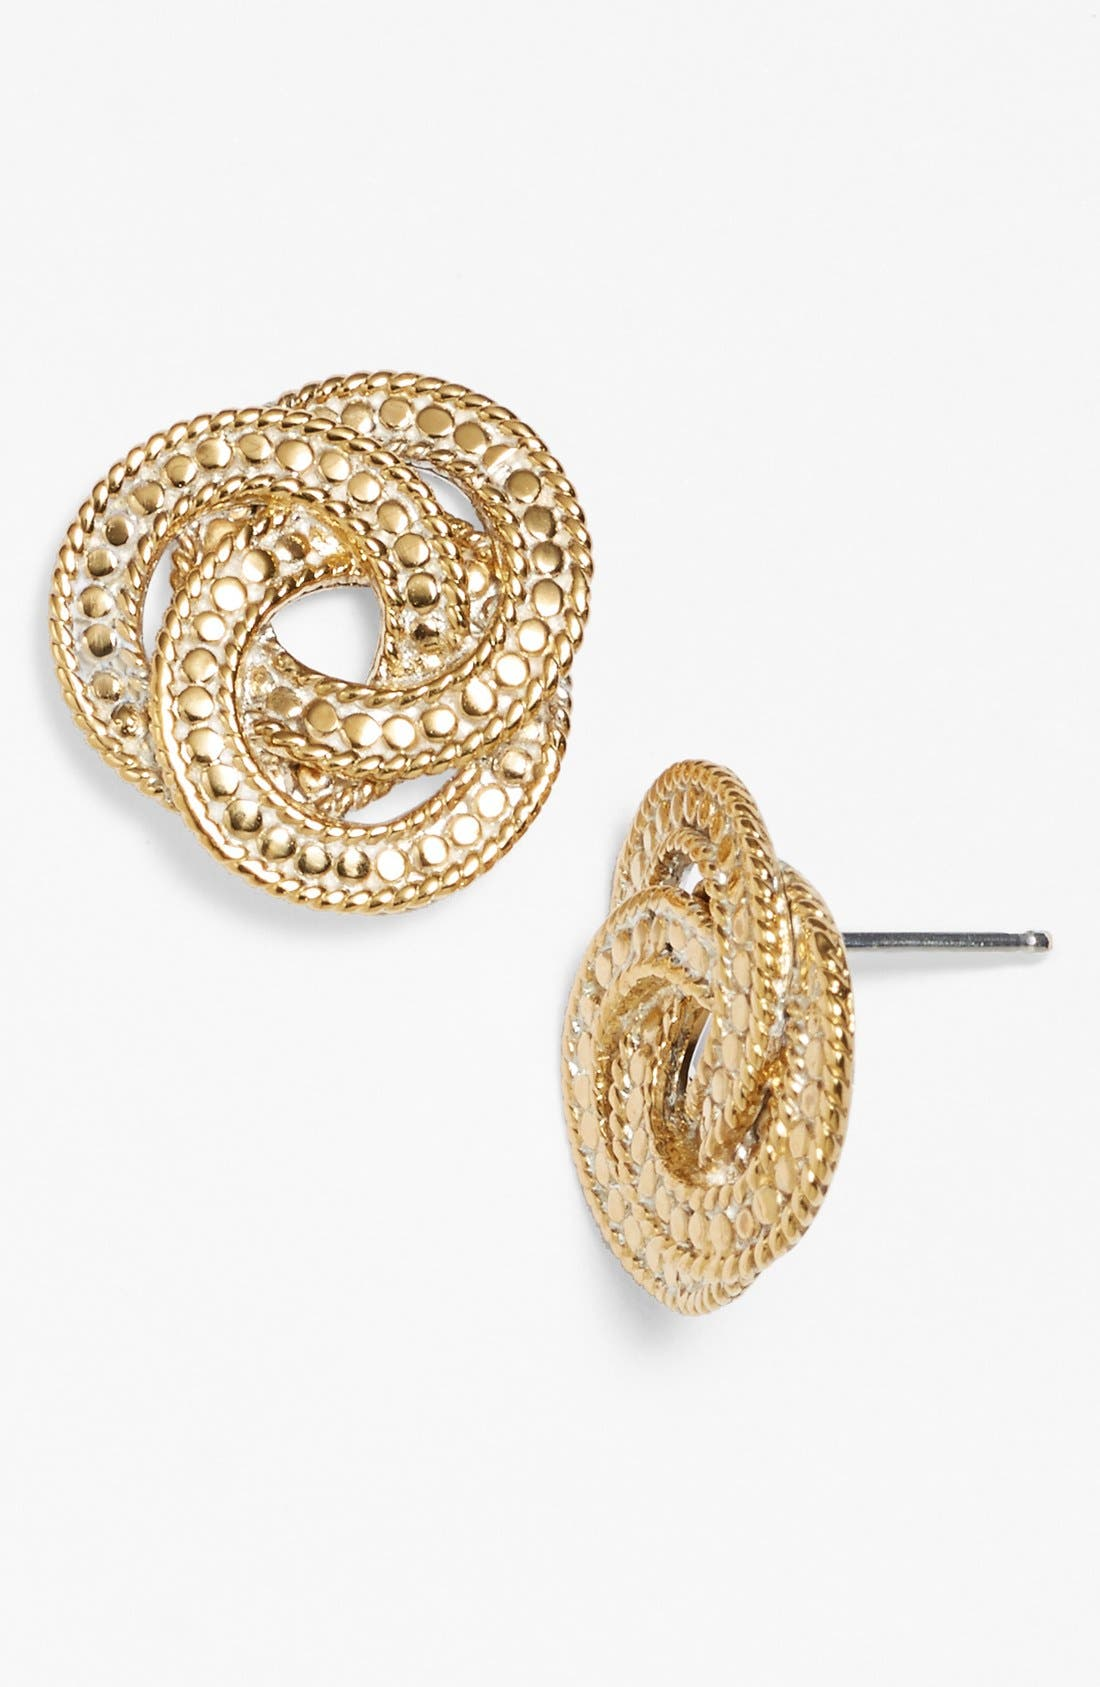 Alternate Image 1 Selected - Anna Beck 'Timor' Twisted Stud Earrings